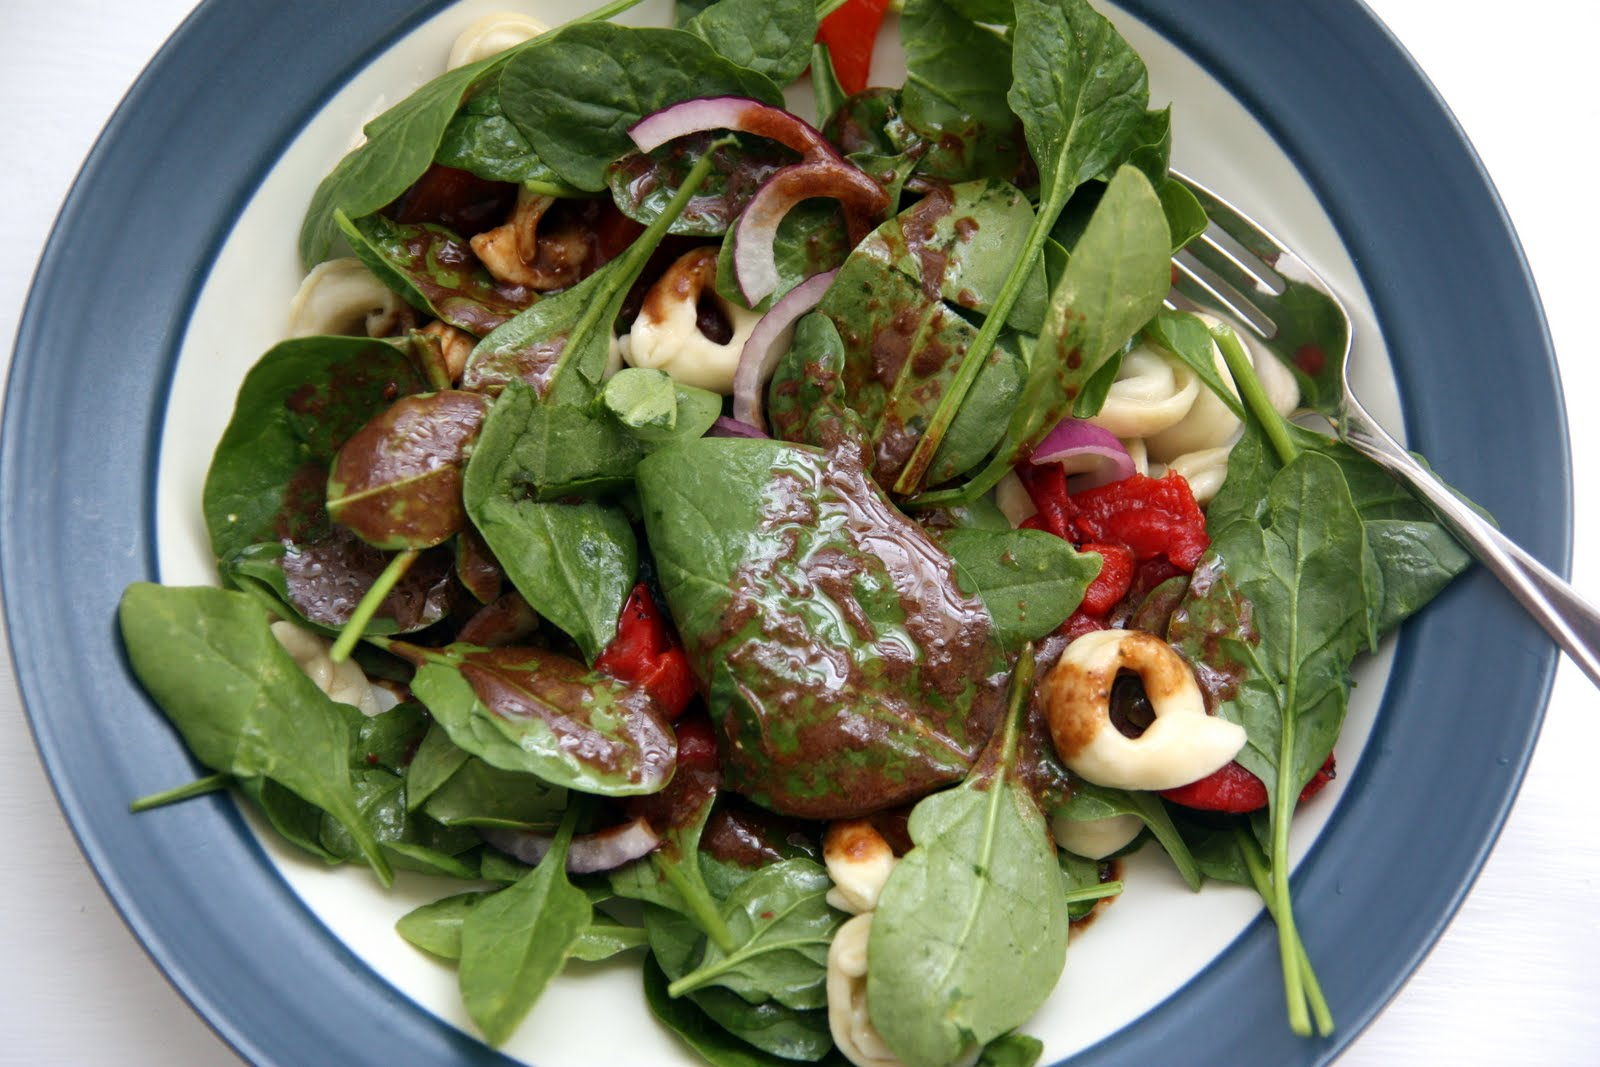 ... Kitchen: Tortellini Spinach Salad with Tomato Balsamic Dressing